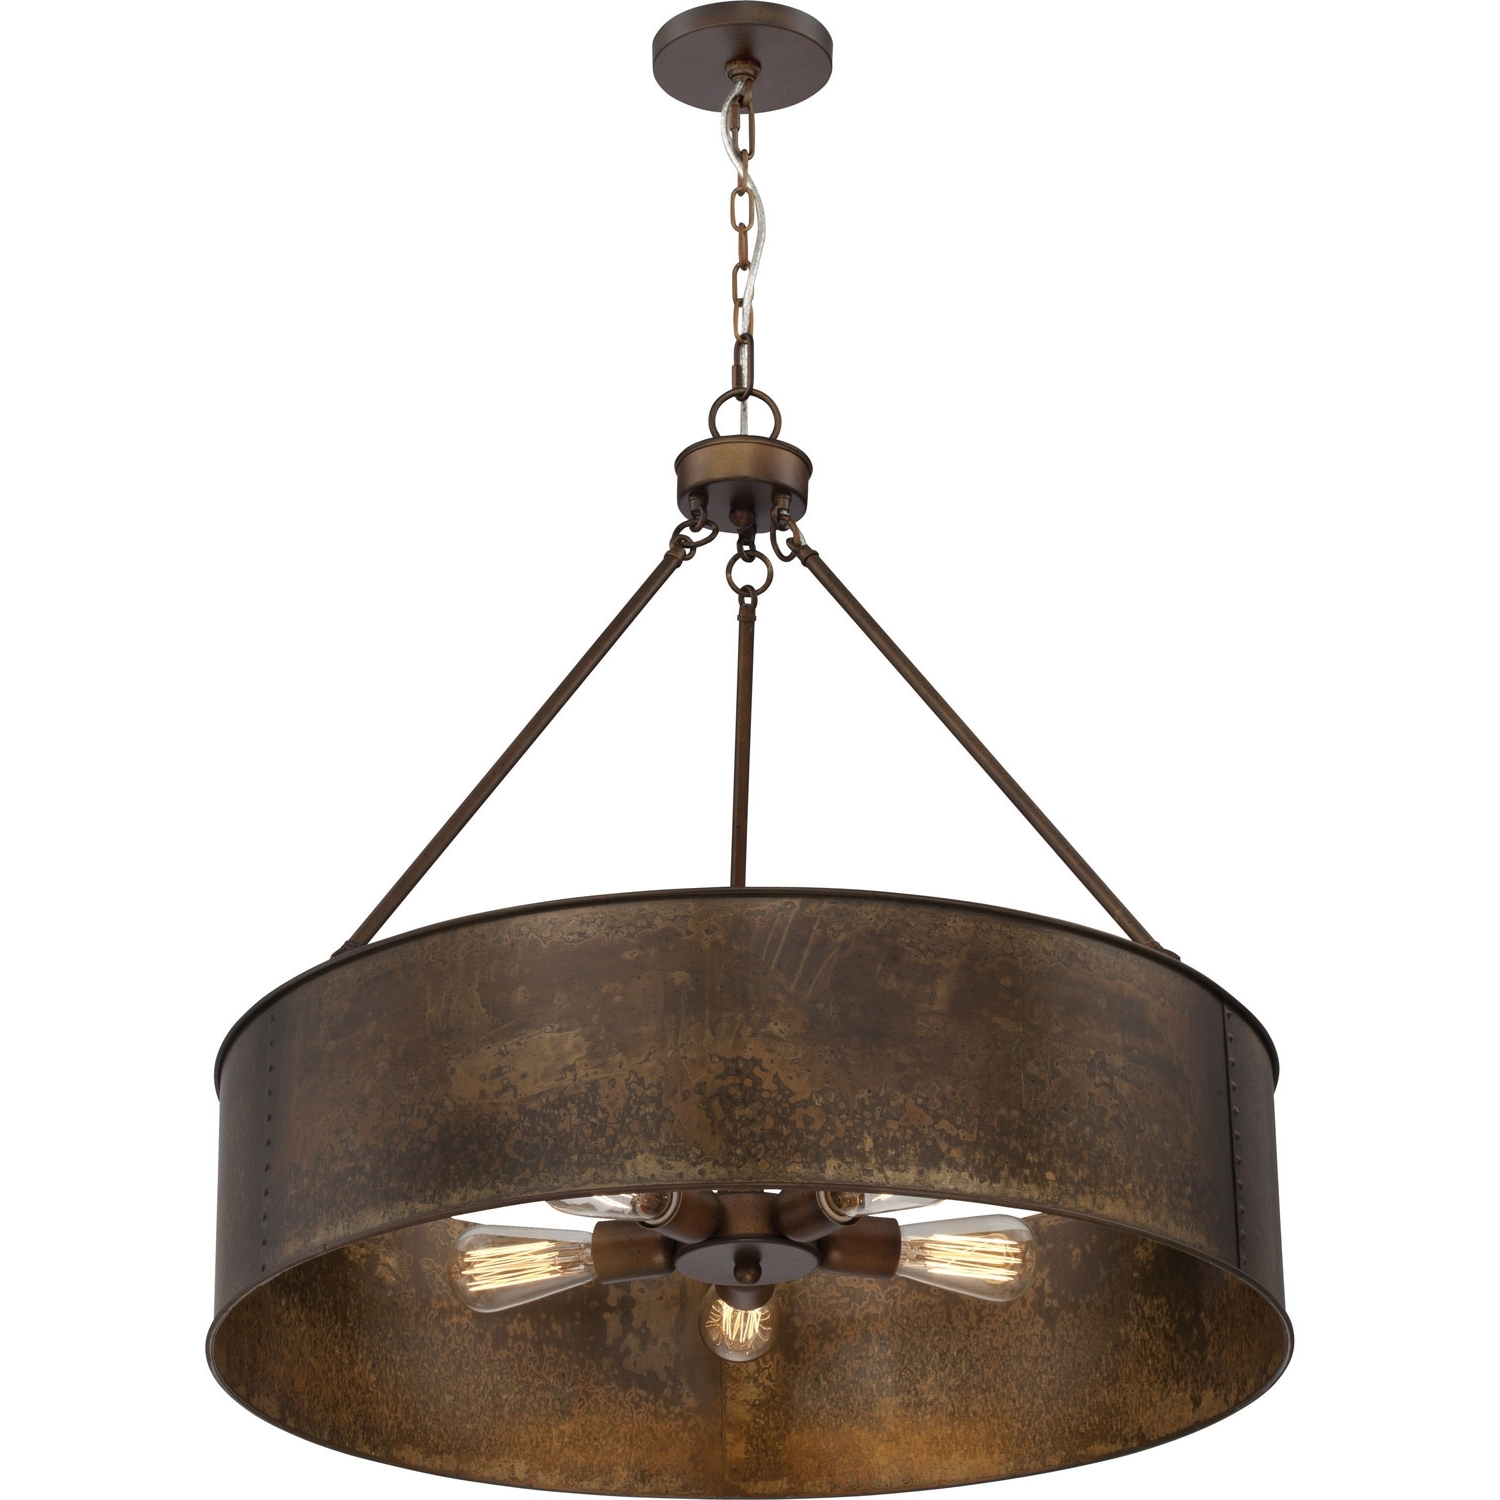 Bellacor Throughout Turquoise Stone Chandelier Lighting (View 9 of 15)